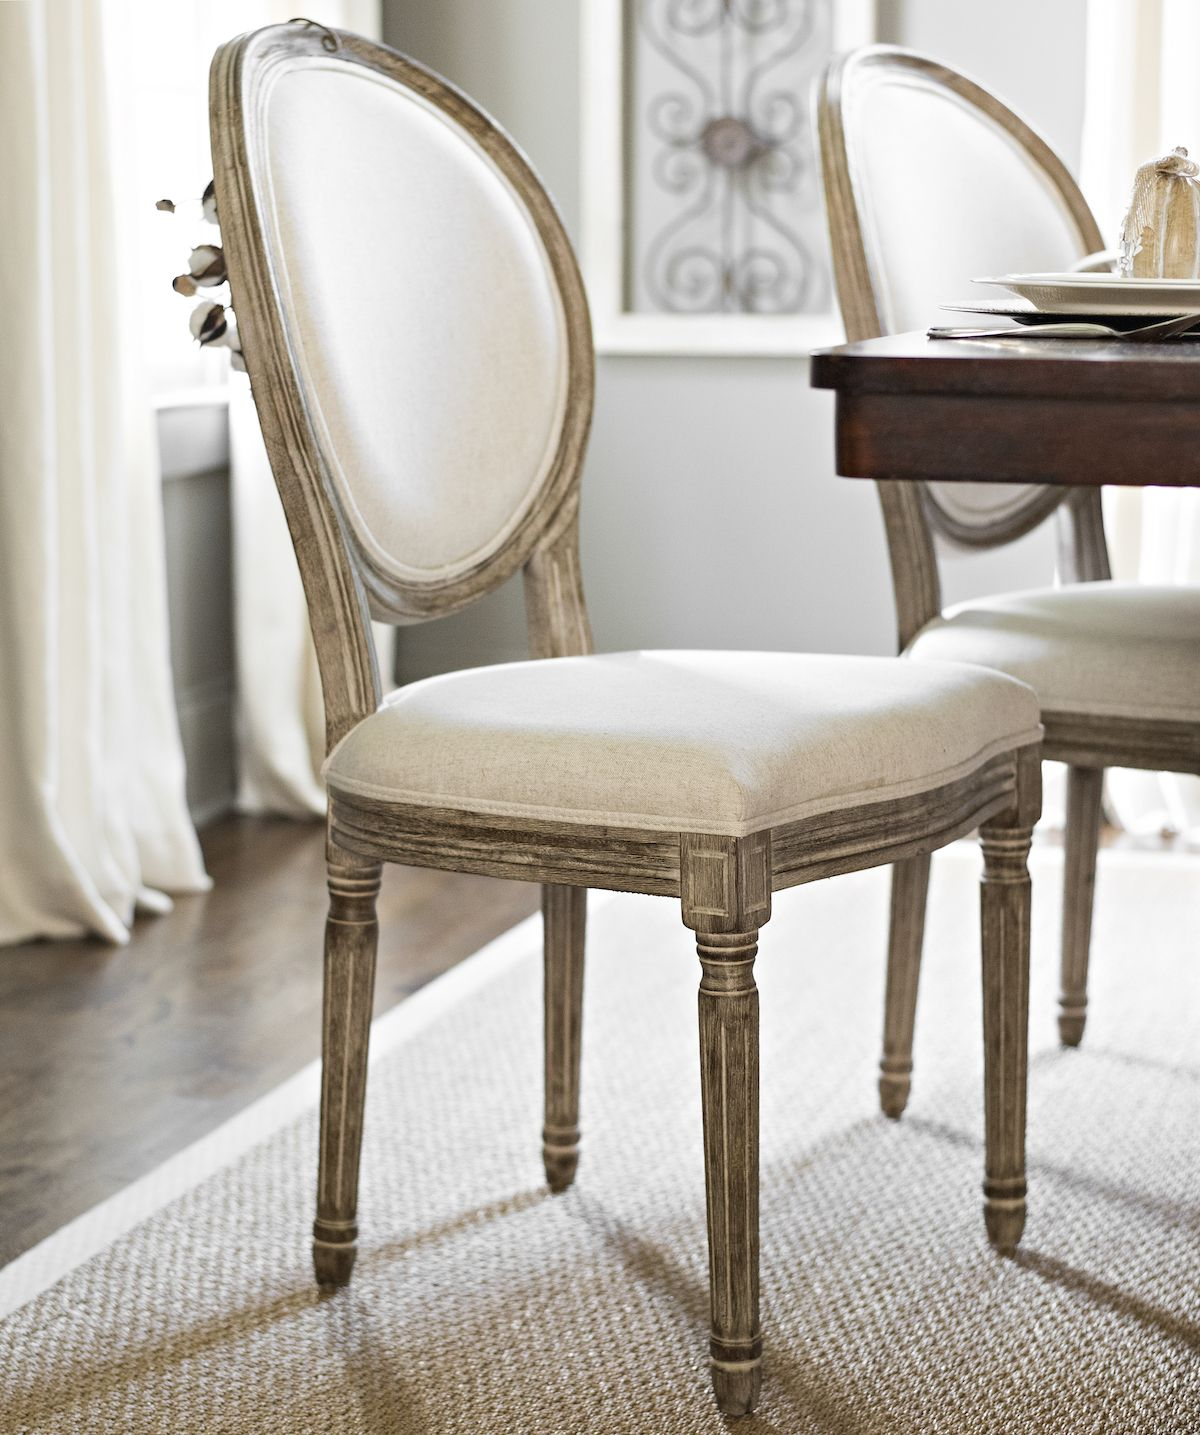 Get A Lot Of Vintage Style With This Regal Dining Chair Leather Dining Room Chairs Dining Chairs Dining Room Chairs